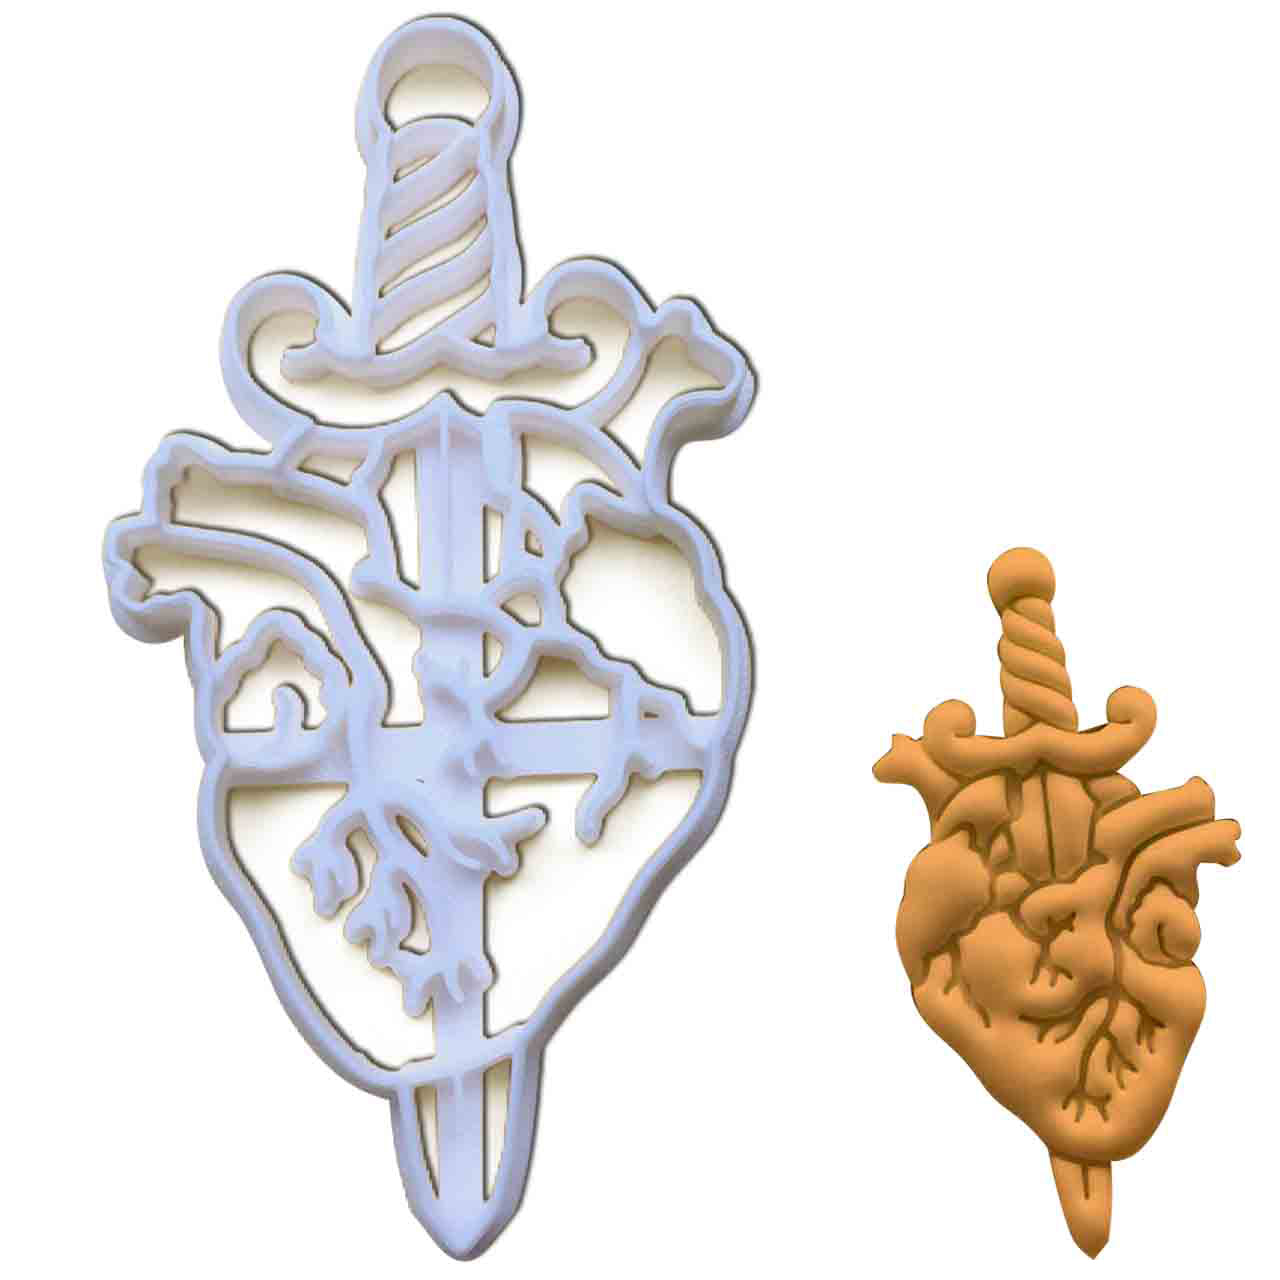 dagger in anatomical heart cookie cutter pressed on white fondant